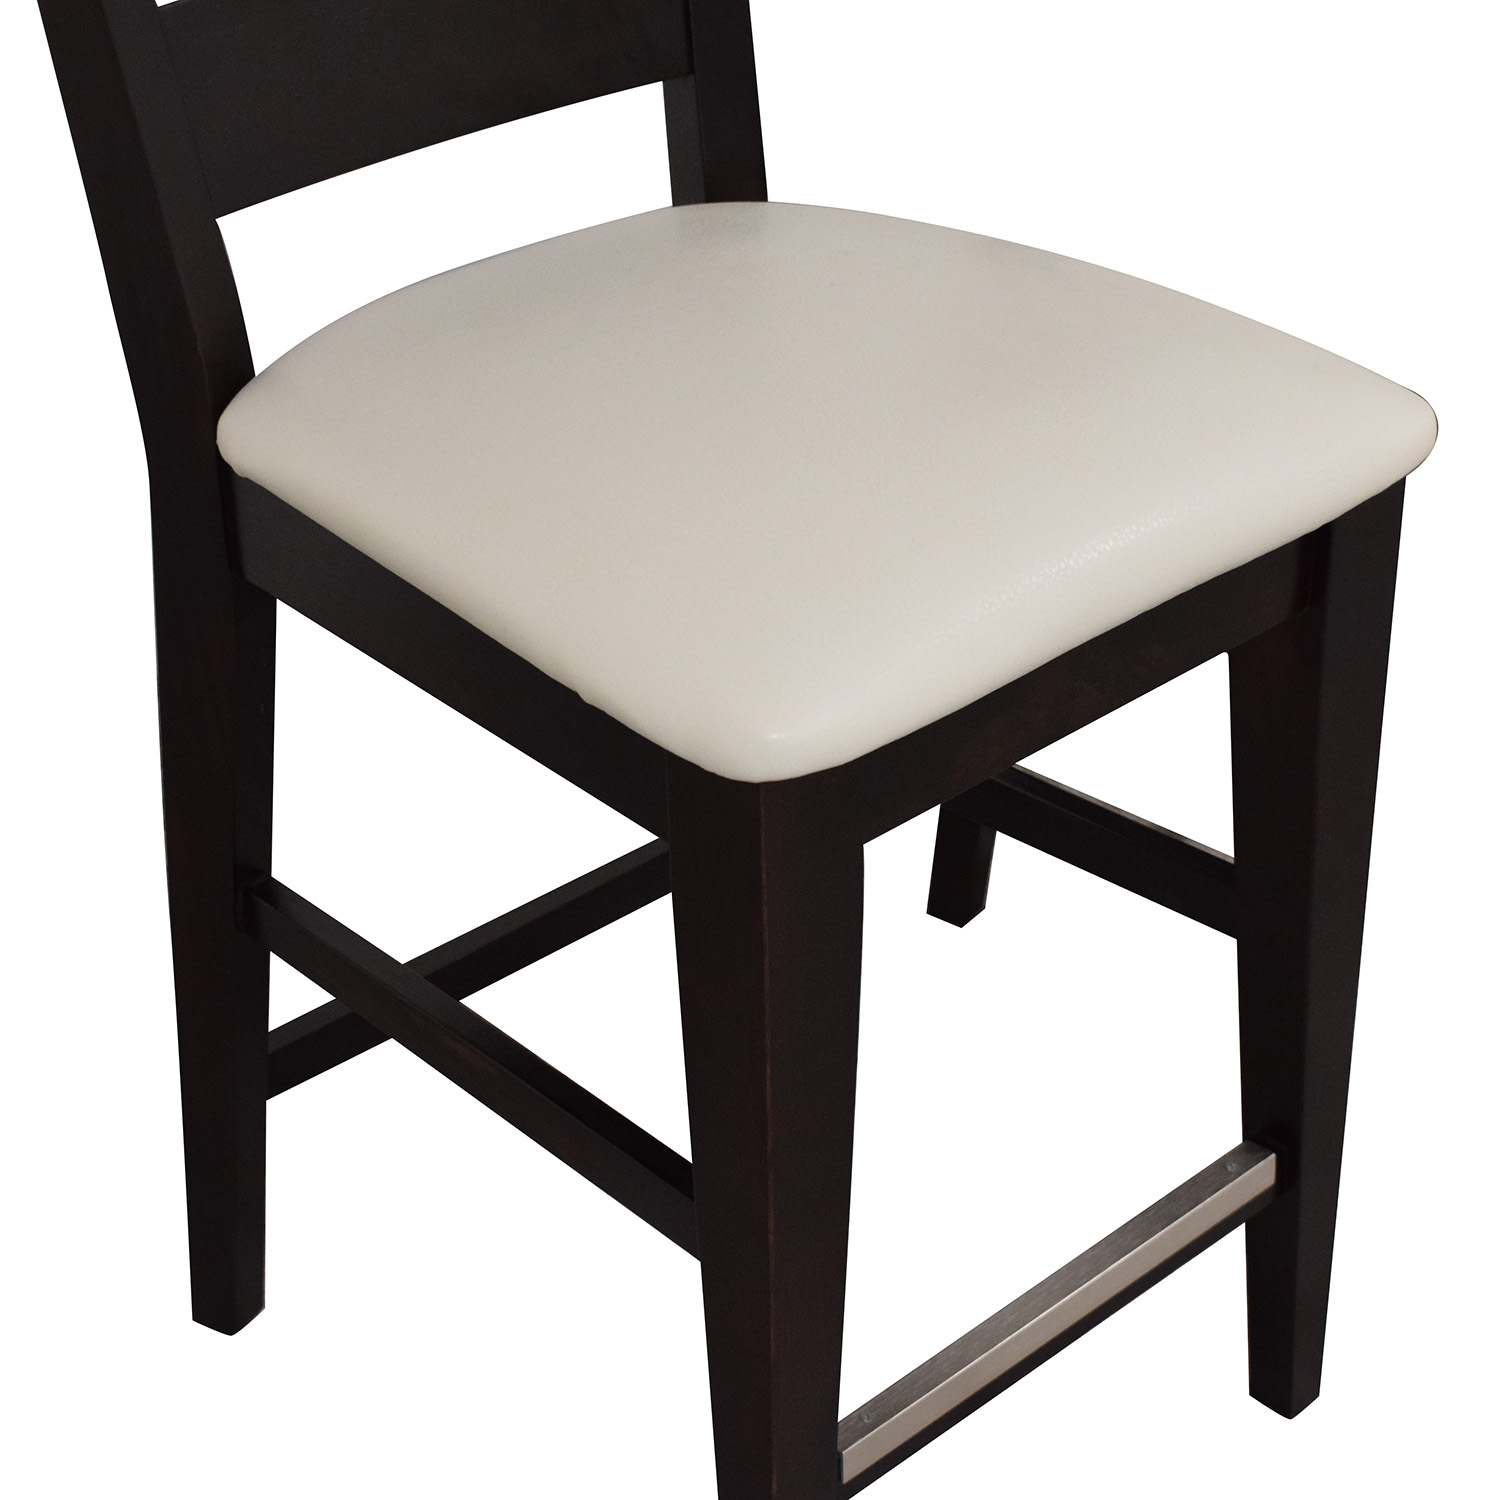 Thomasville Thomasville Upholstered Bar Chairs used